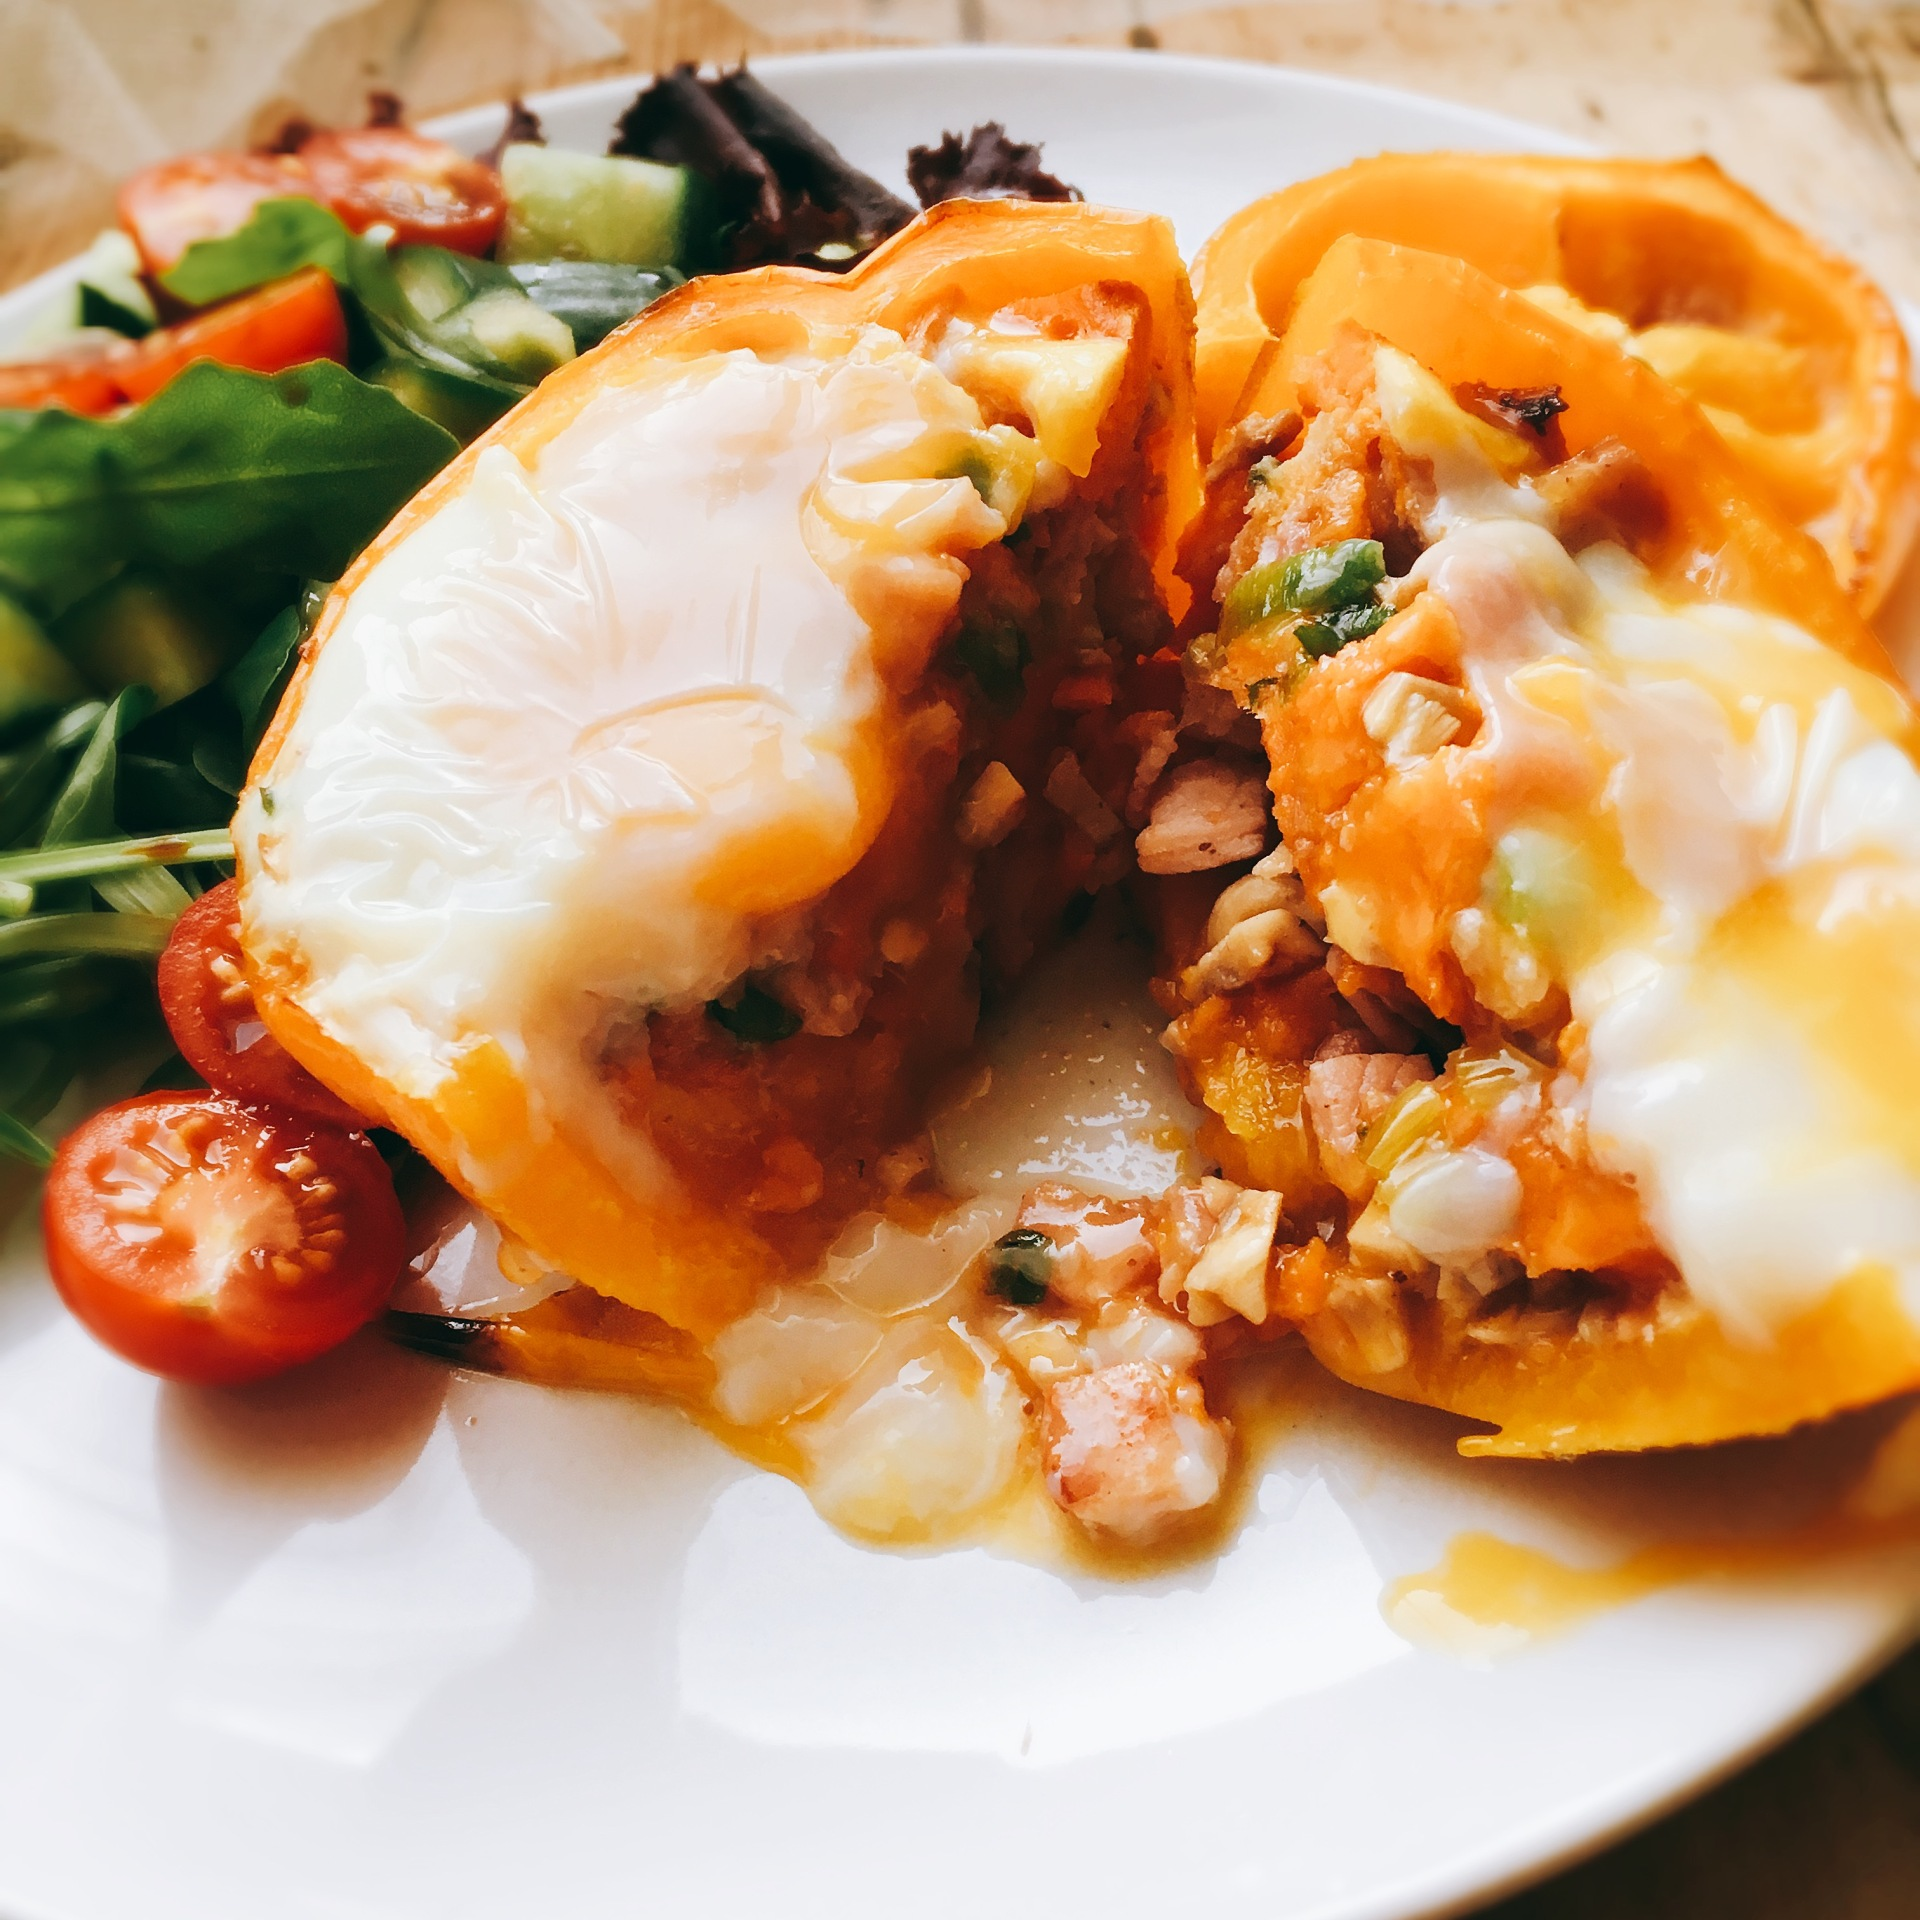 the wee food blogger© Stuffed pepper recipe